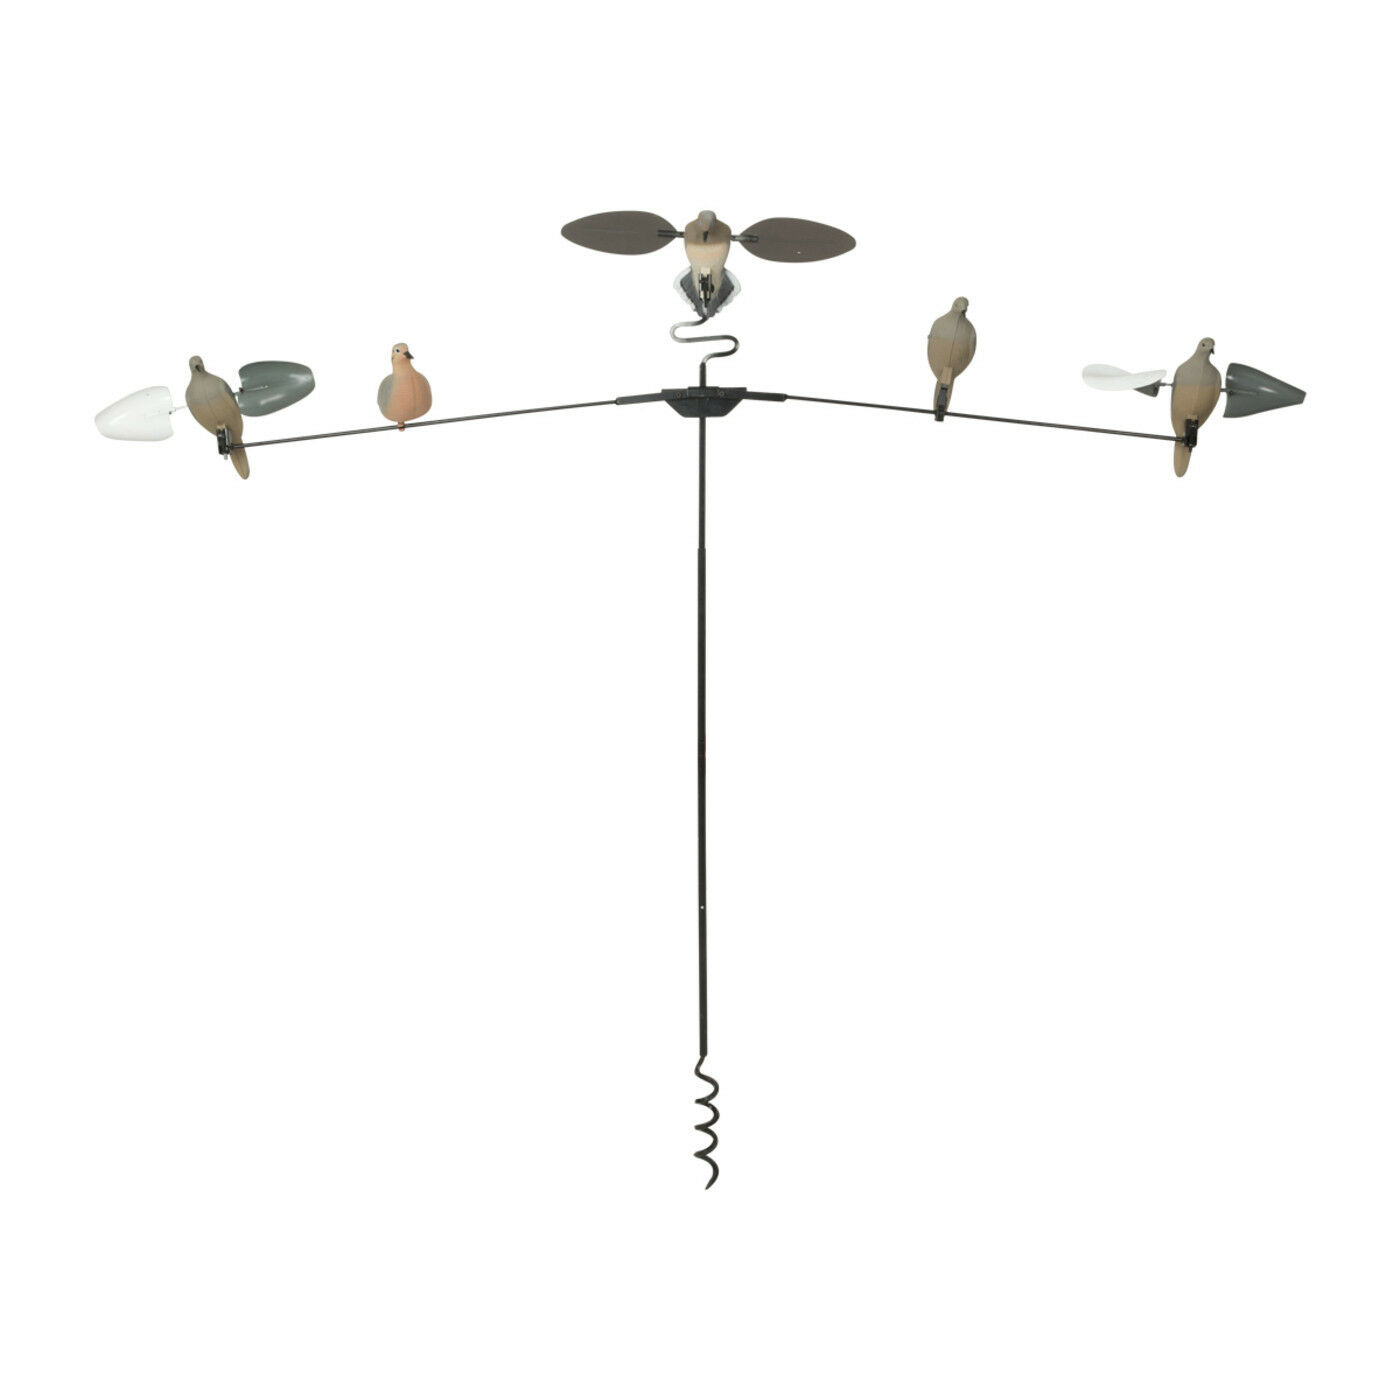 Avery Greenhead Gear 8' T-Dove Pole with Auger Tip Extending Arms Decoys Doves